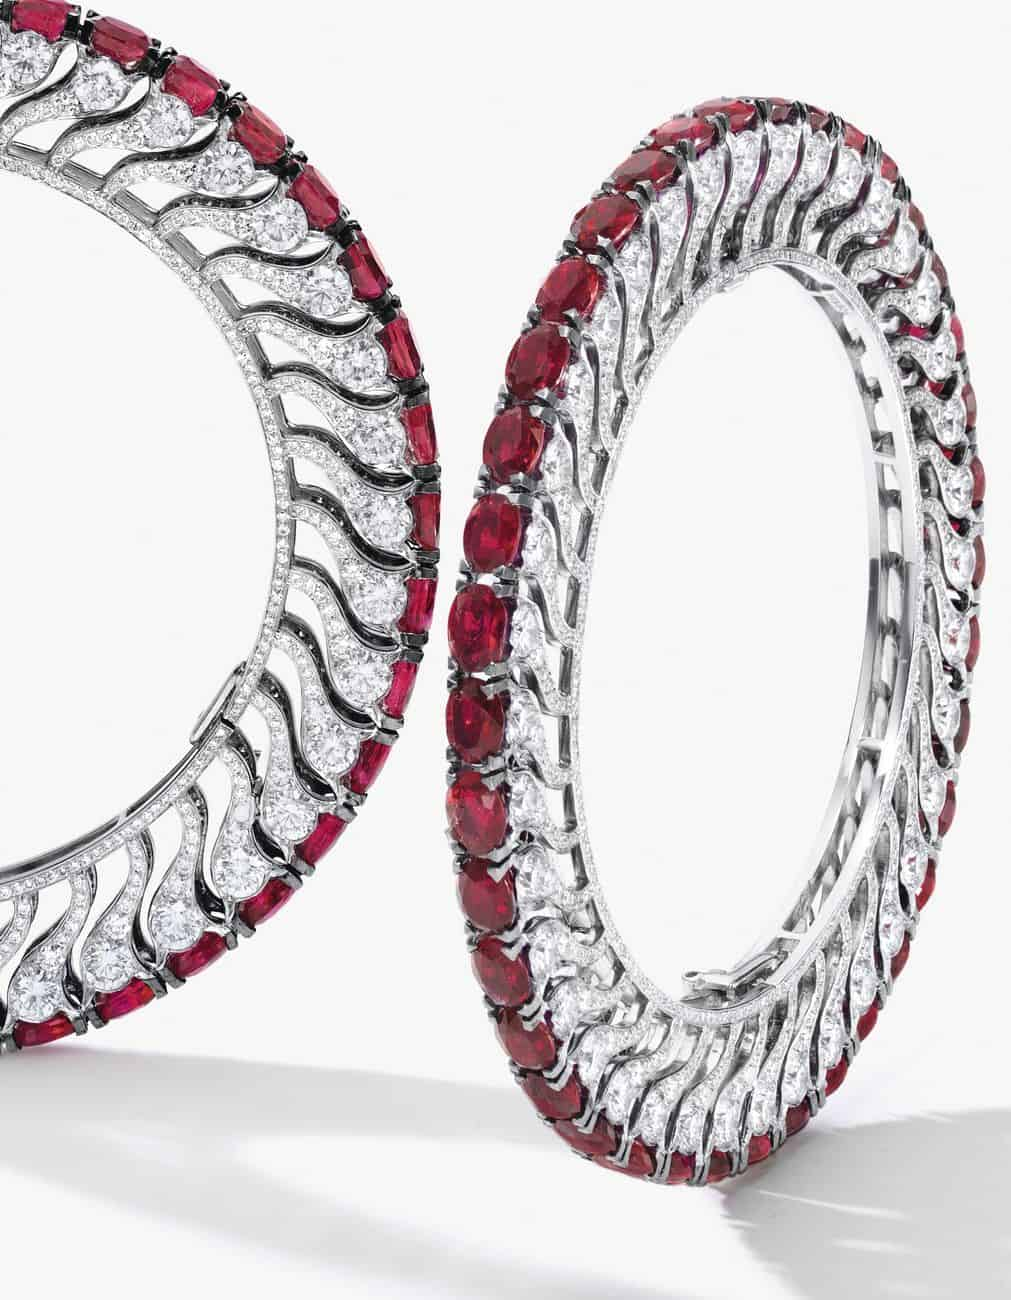 Lot 1707 - Another View of the Unique Pair of Ruby and Diamond Bangles, BHAGAT